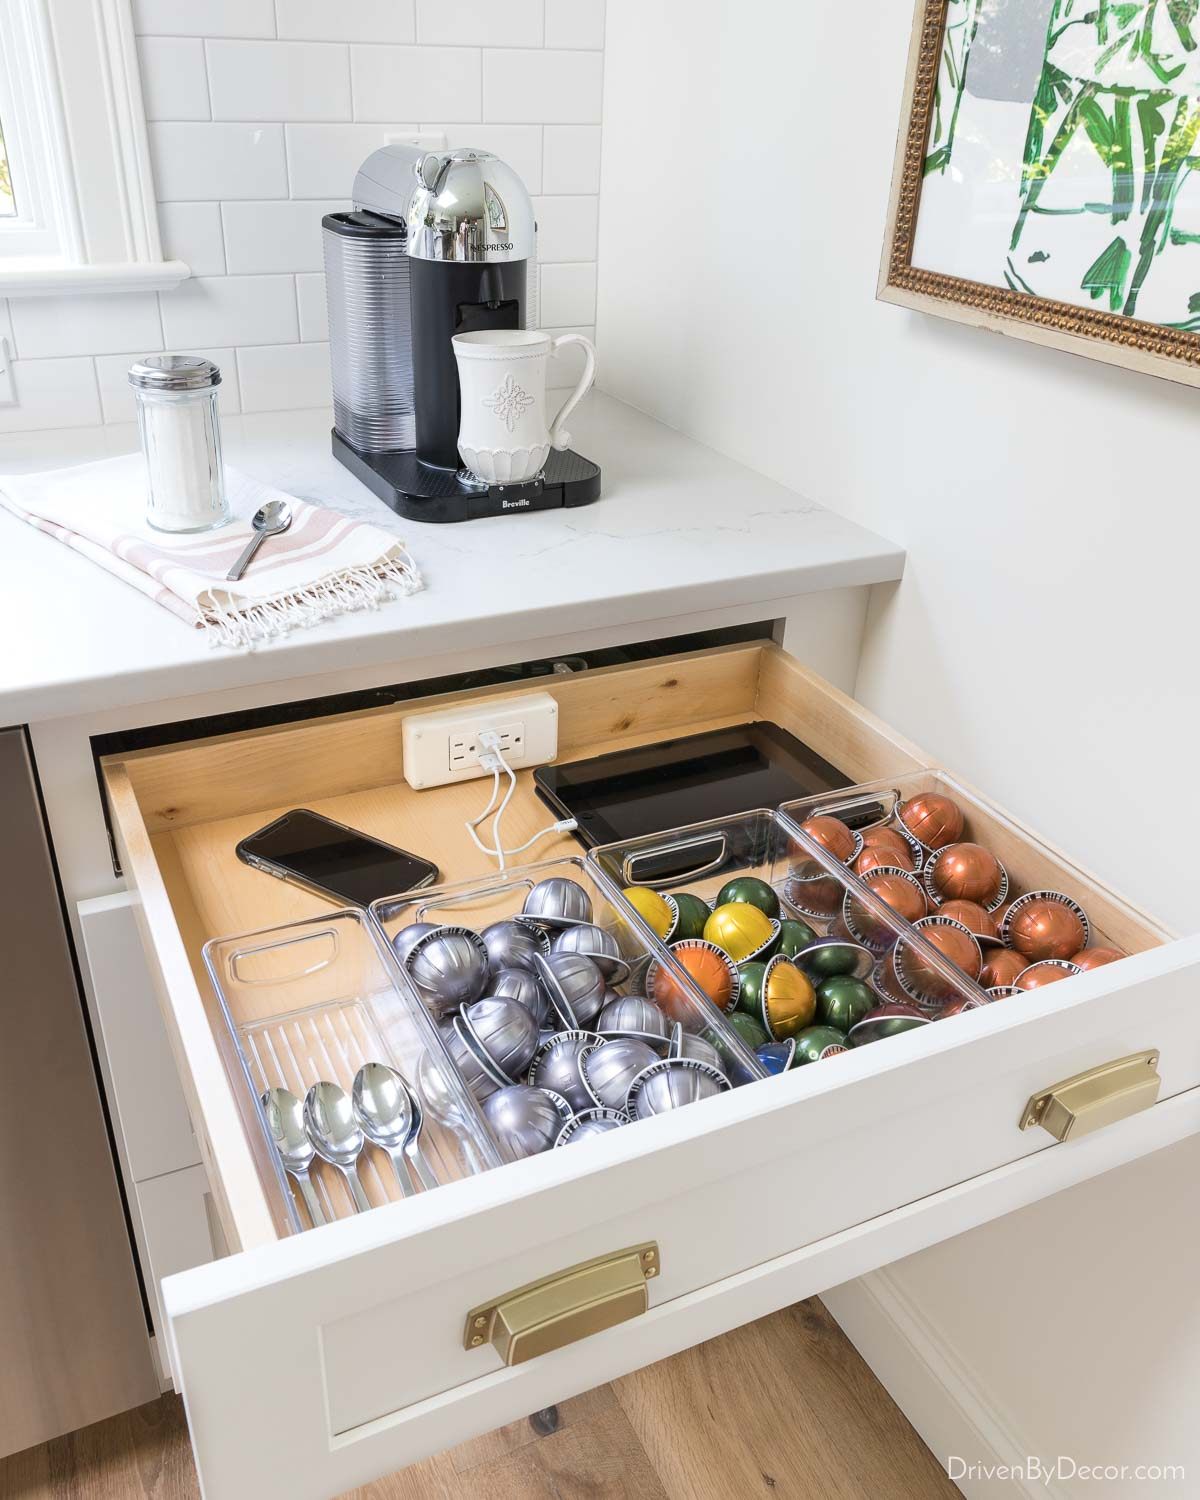 Having an outlet in the back of a kitchen drawer is awesome for charging electronics without countertop clutter!